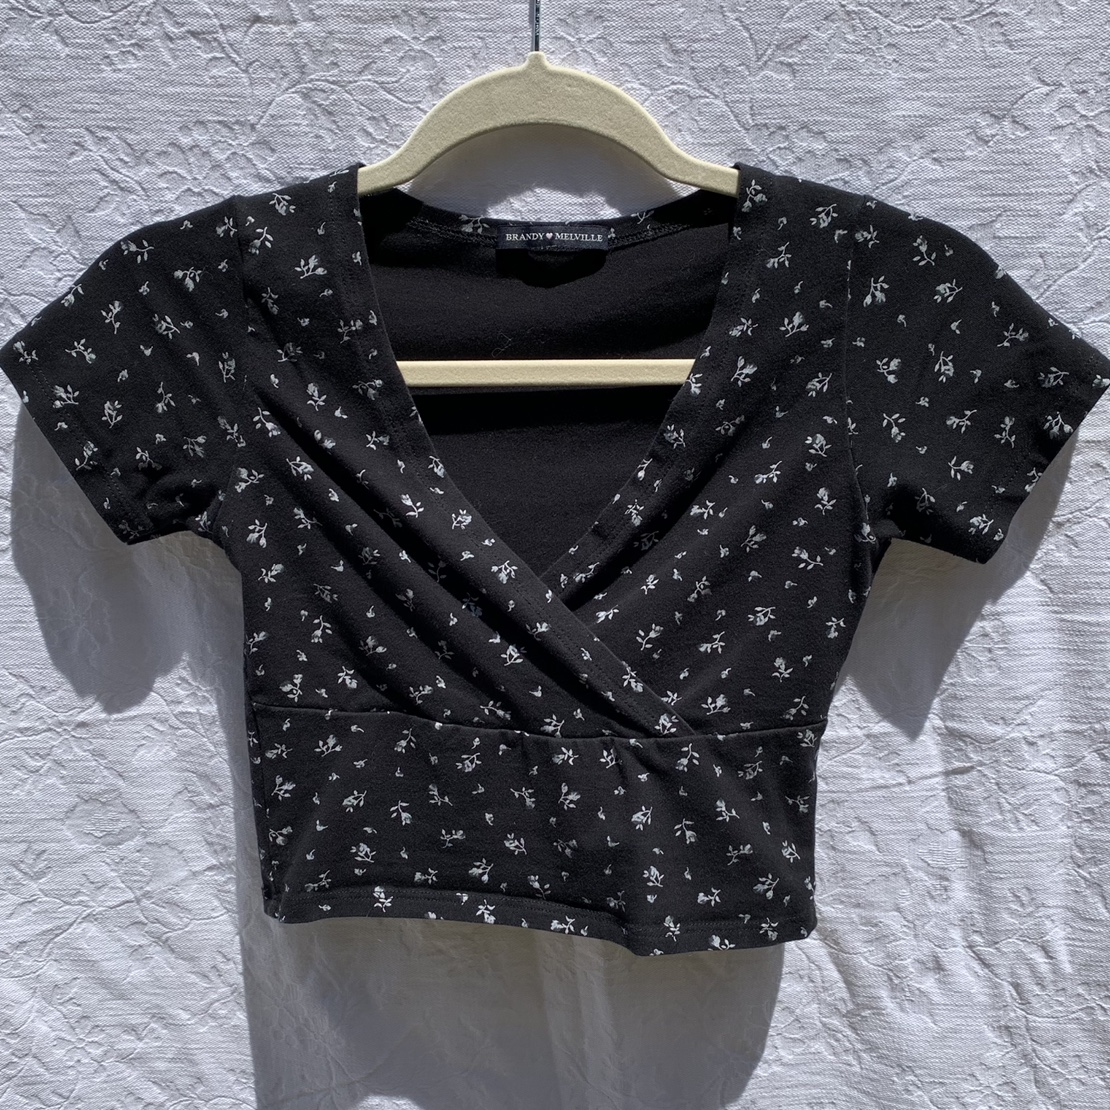 Product Image 1 - Brandy Melville wrap floral top